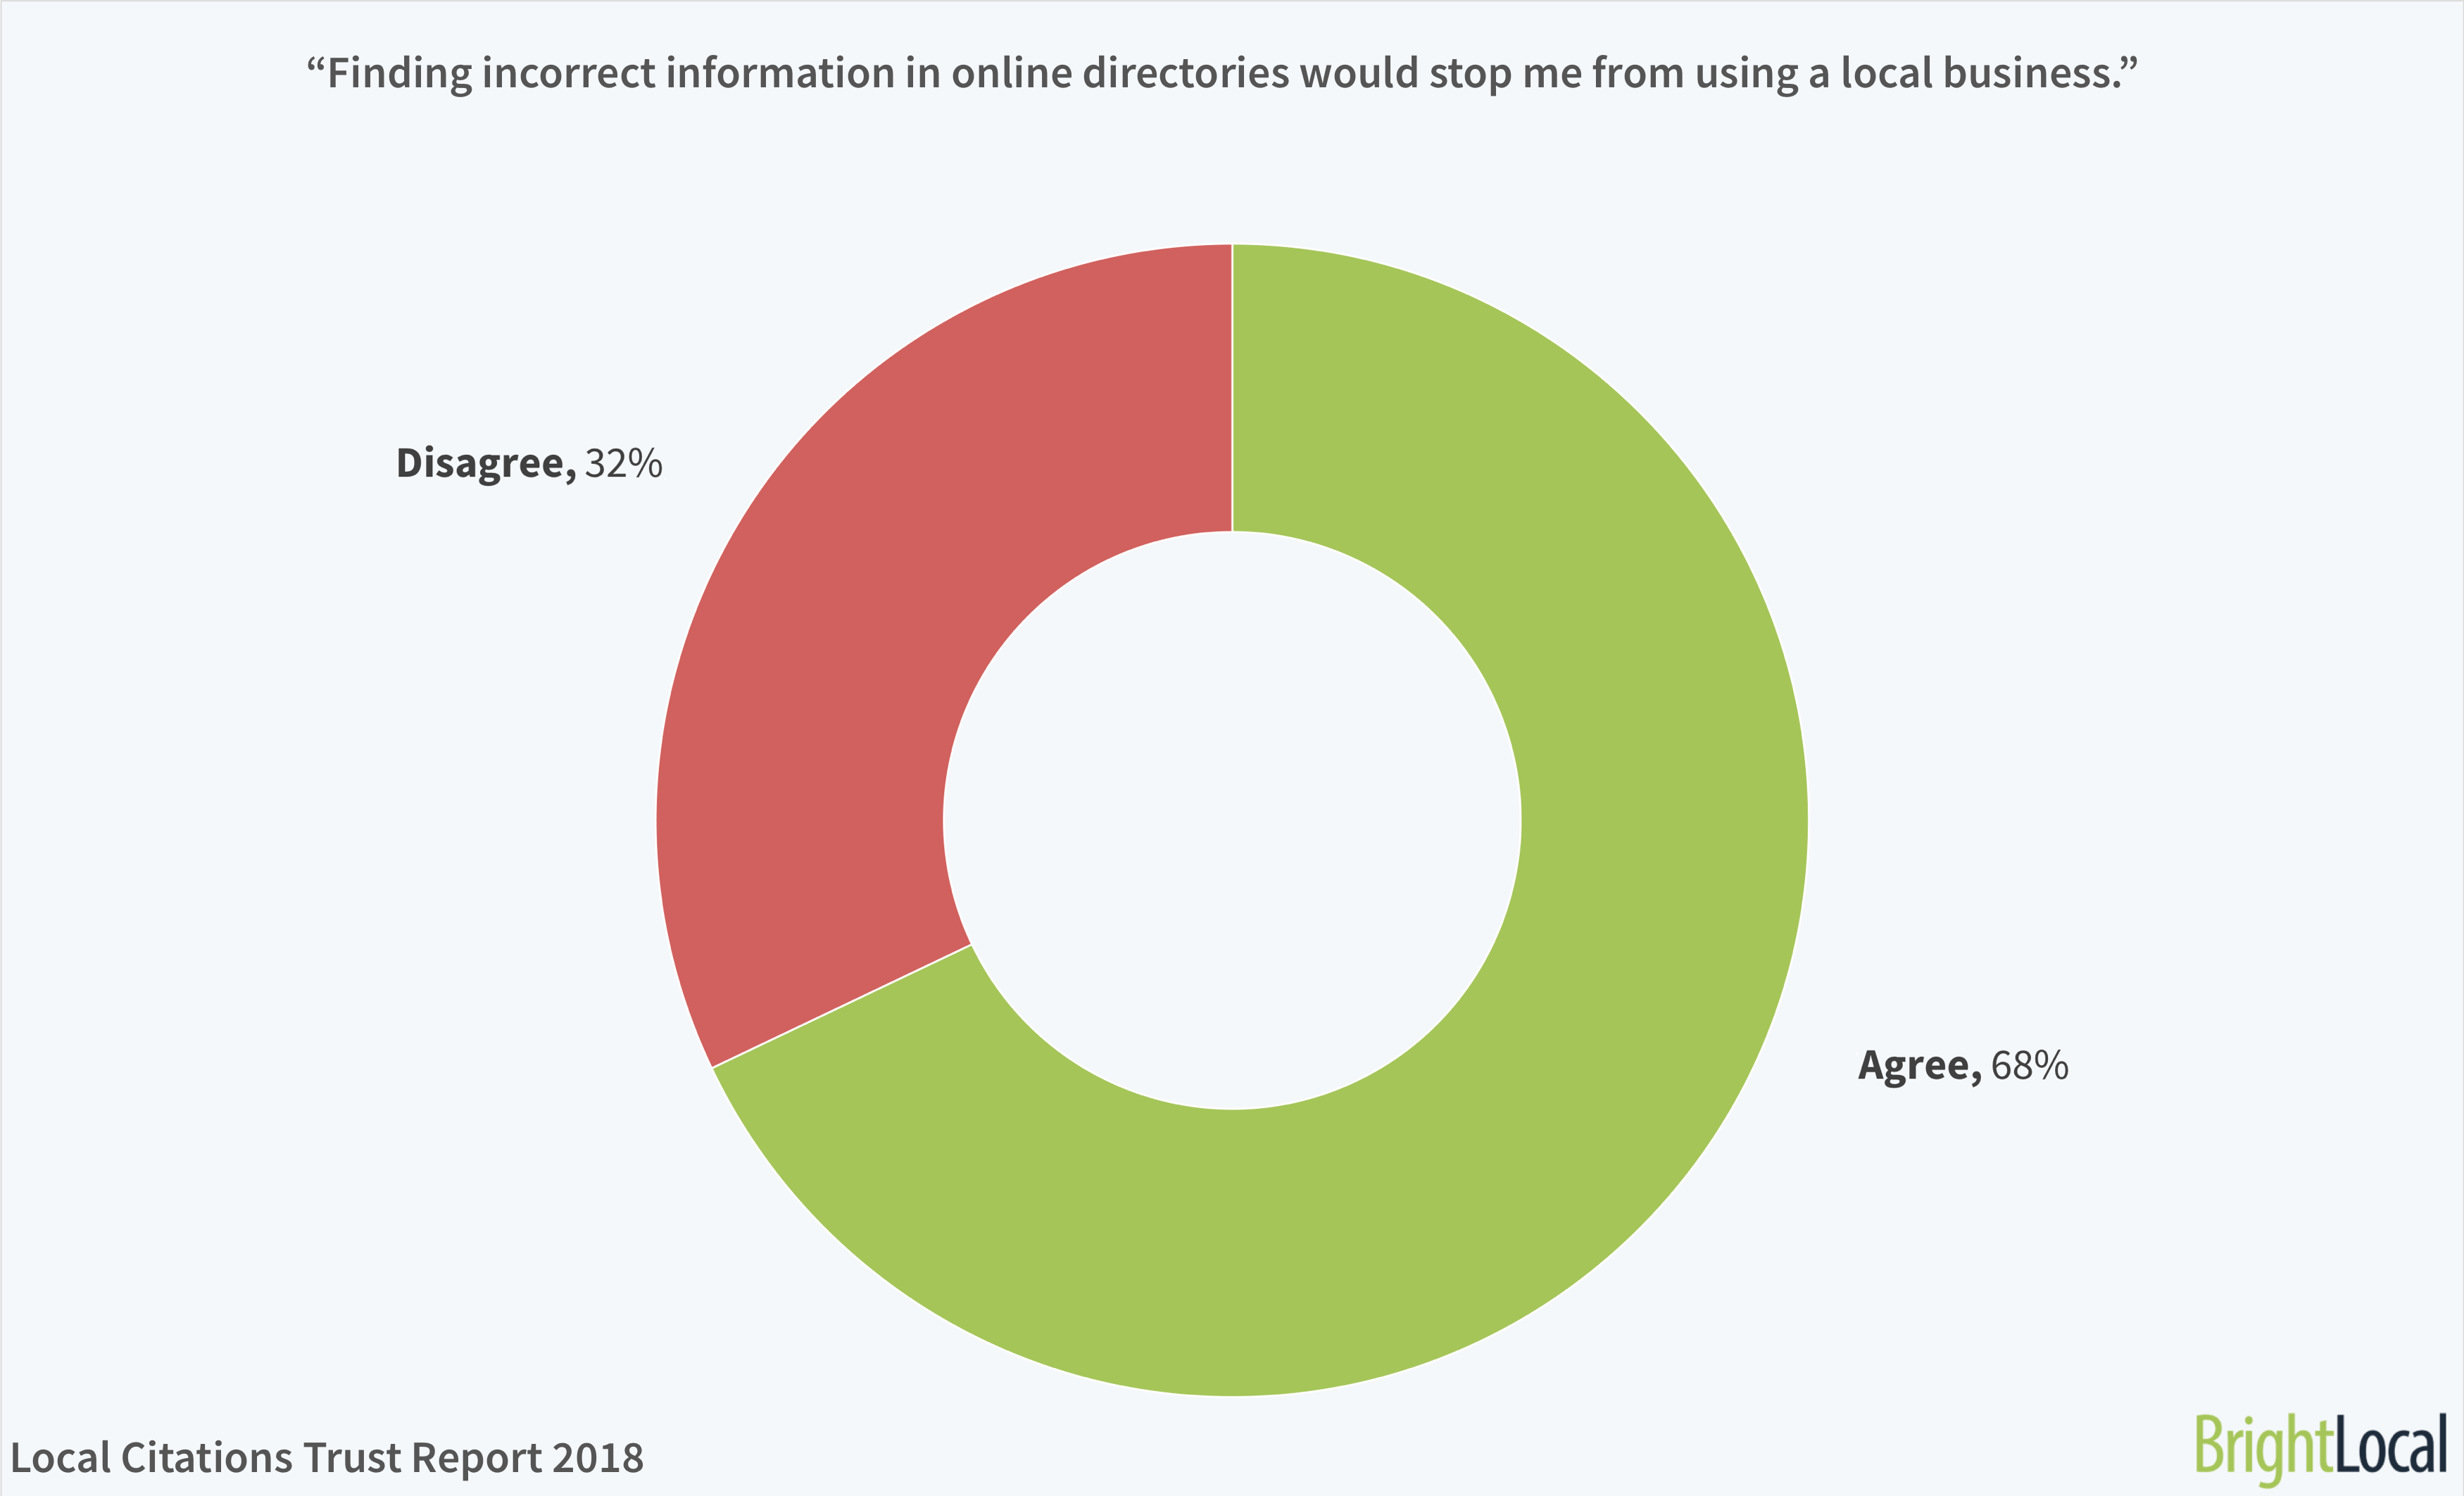 """Finding incorrect information in online directories would stop me from using a local business."" 